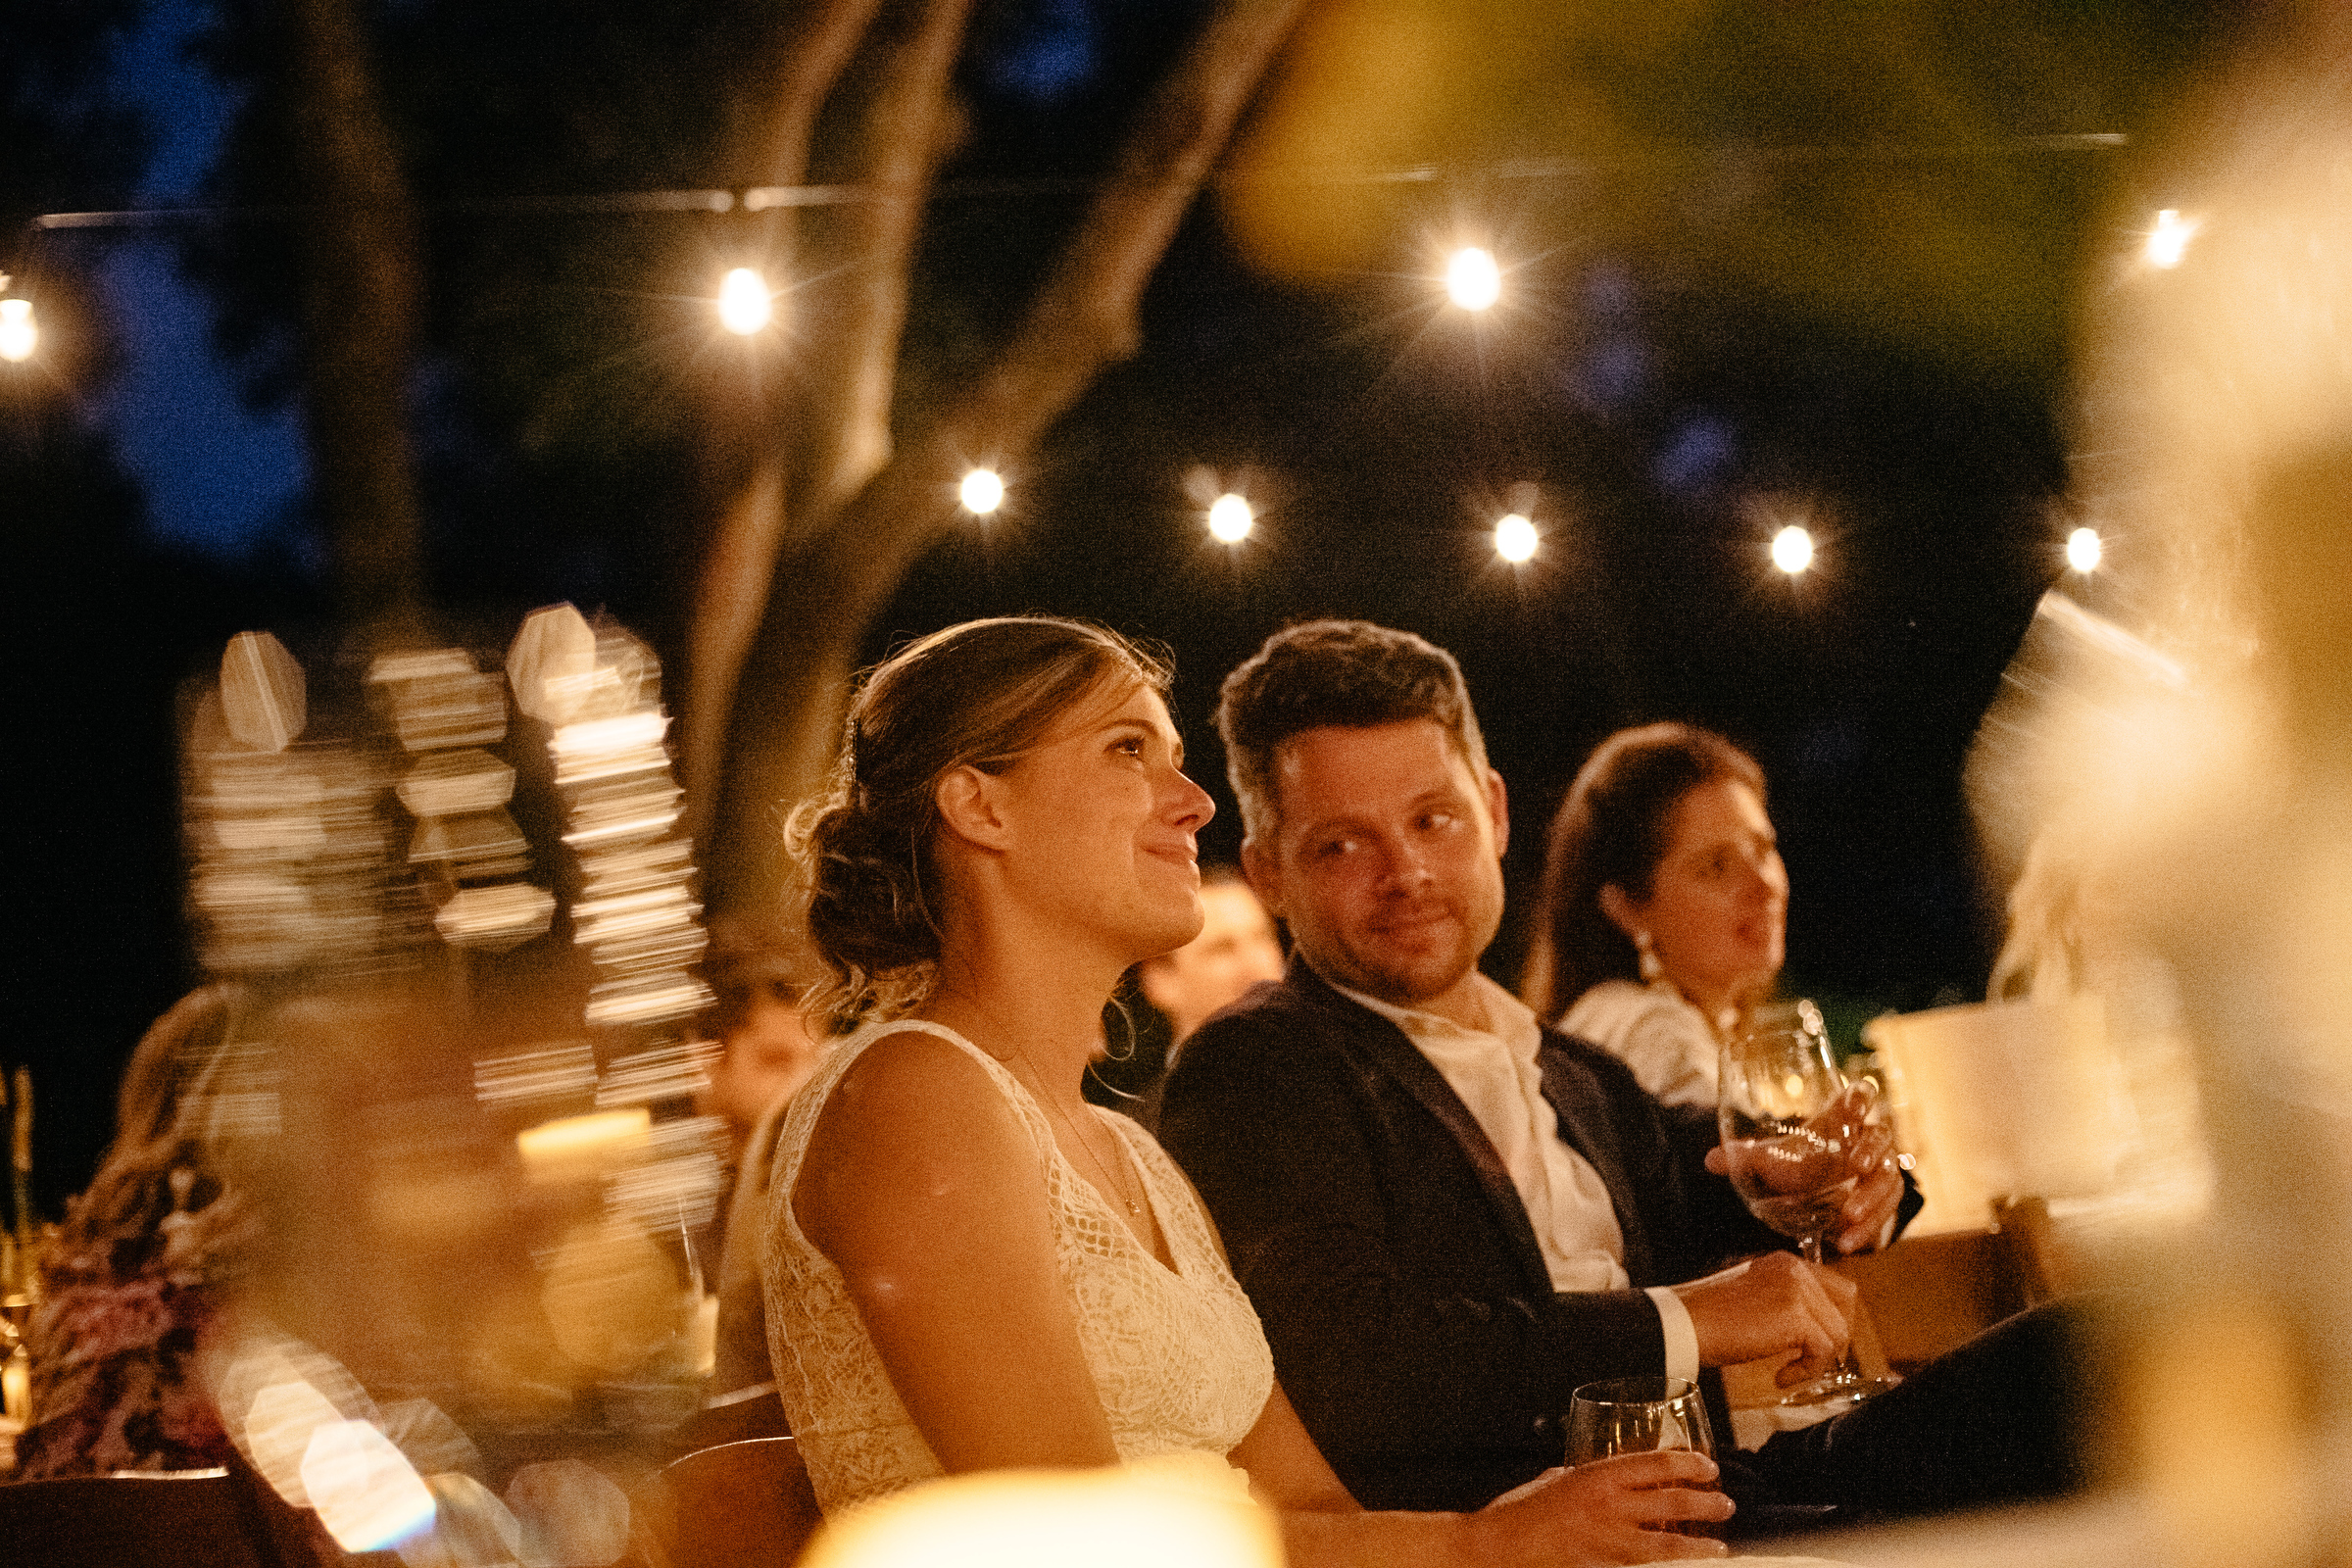 night wedding moments with bride and groom at their private backyard wedding